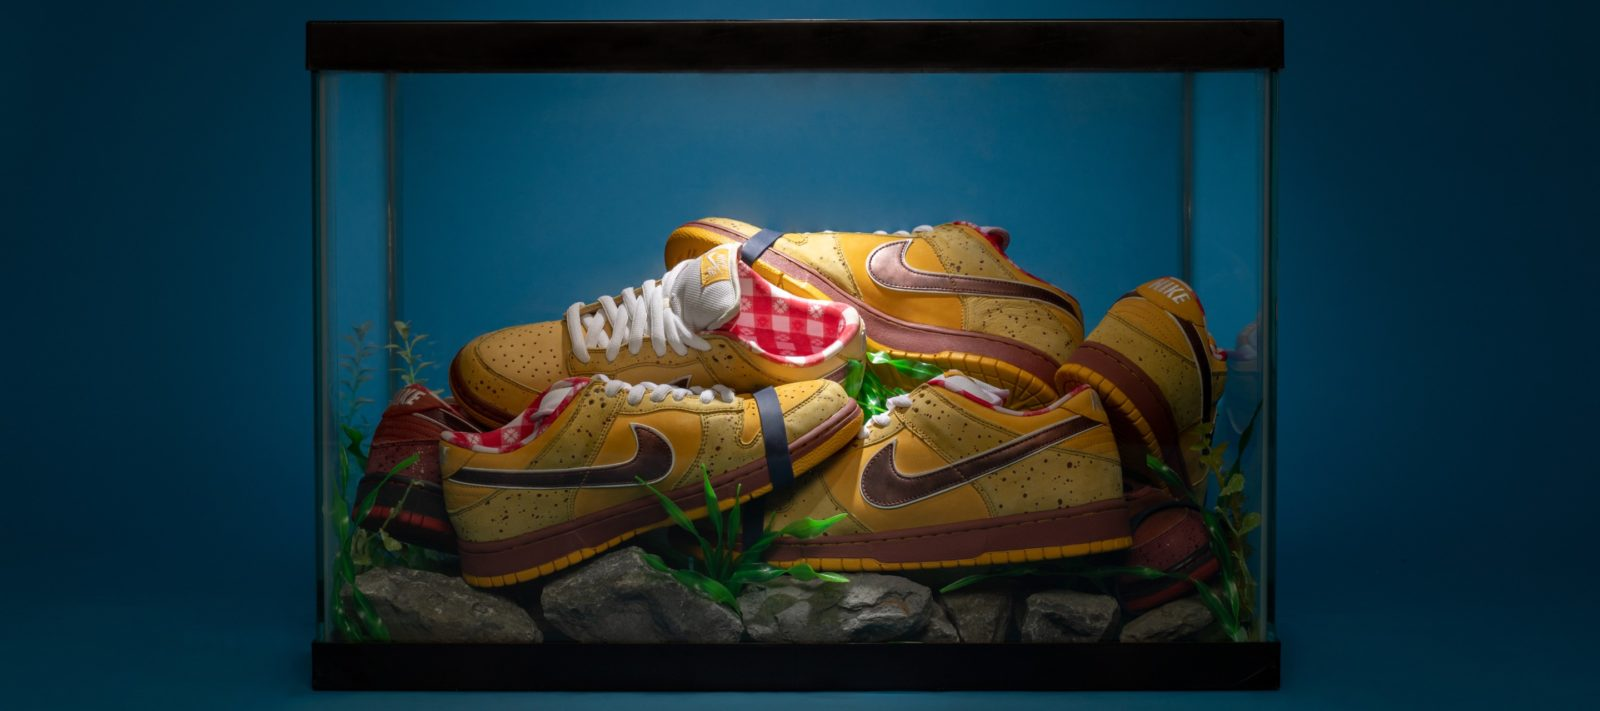 9 ultra-rare kicks are going under the hammer at Sotheby's first sneaker sale in Asia